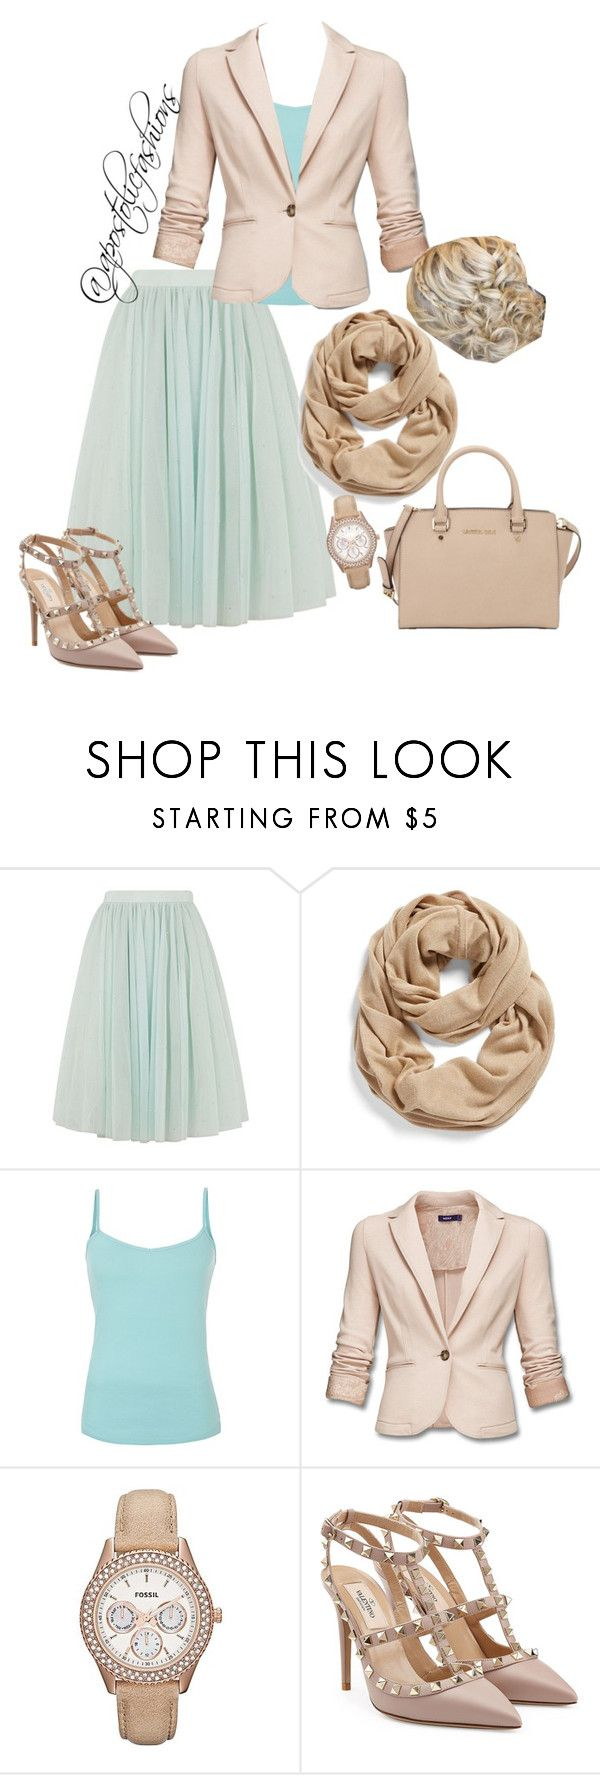 """Apostolic Fashions #919"" by apostolicfashions on Polyvore featuring Ted Baker, Halogen, FOSSIL, Valentino and MICHAEL Michael Kors"